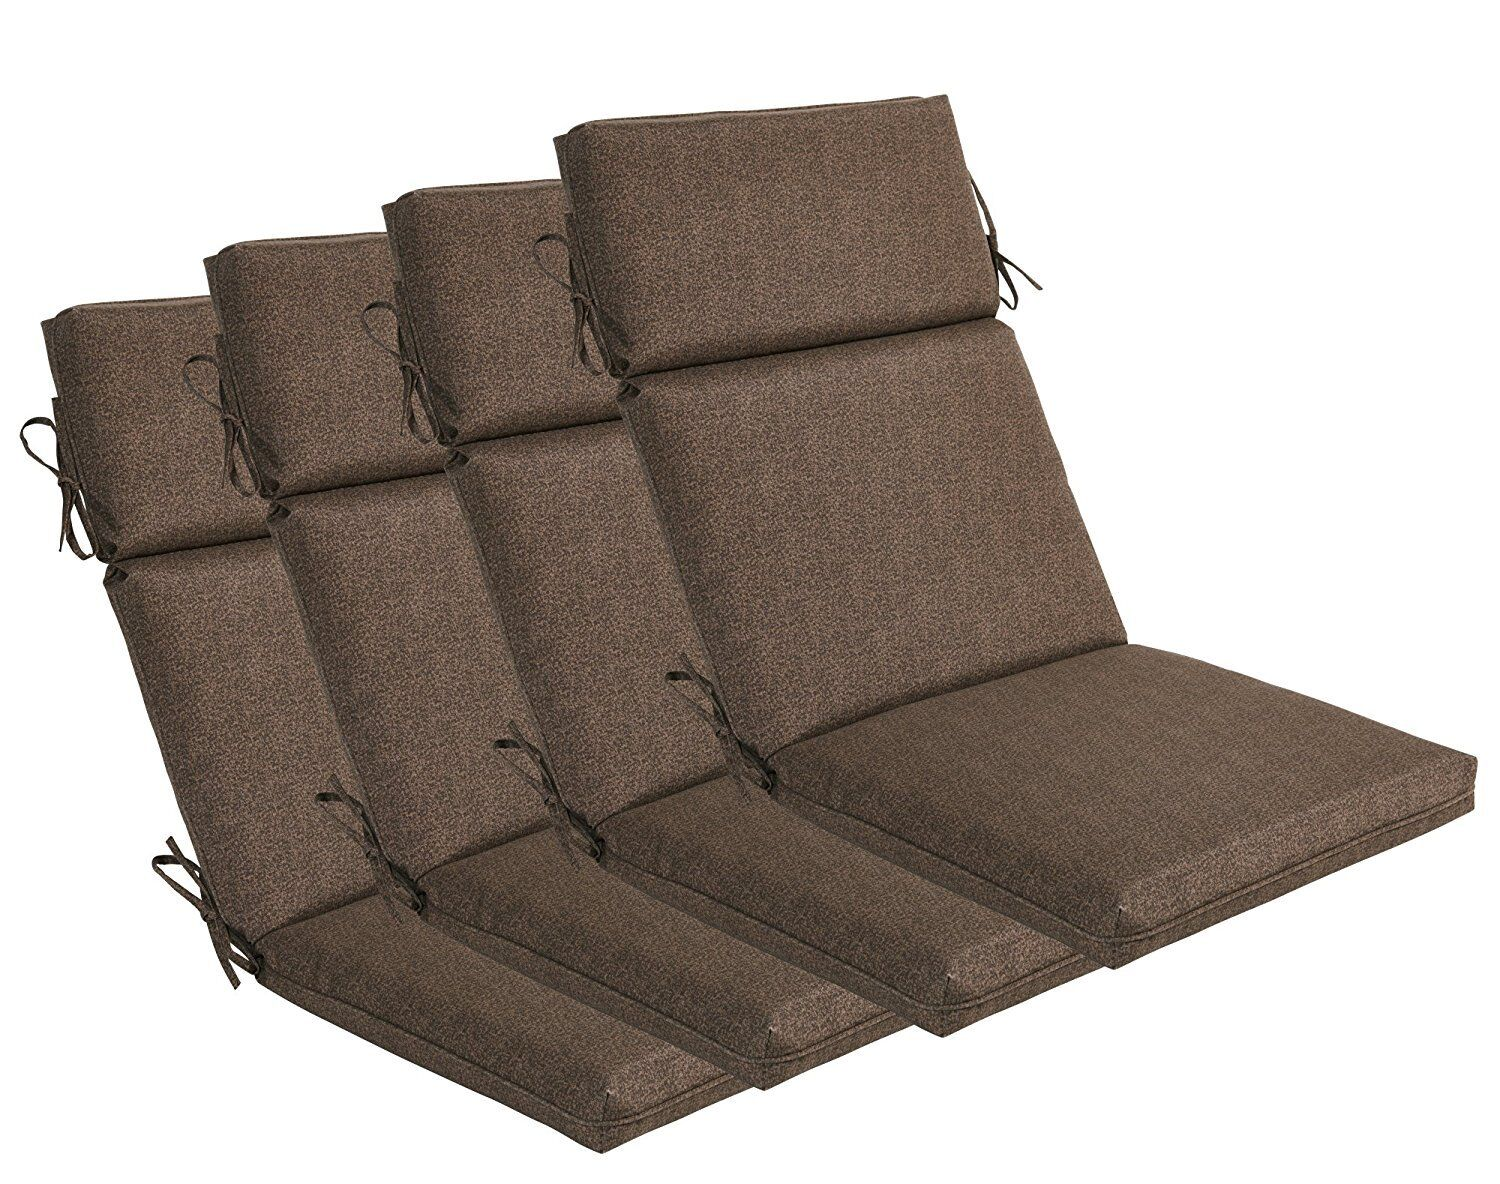 Bossima Outdoor Seat Pad Cushions Patio High Back Dining